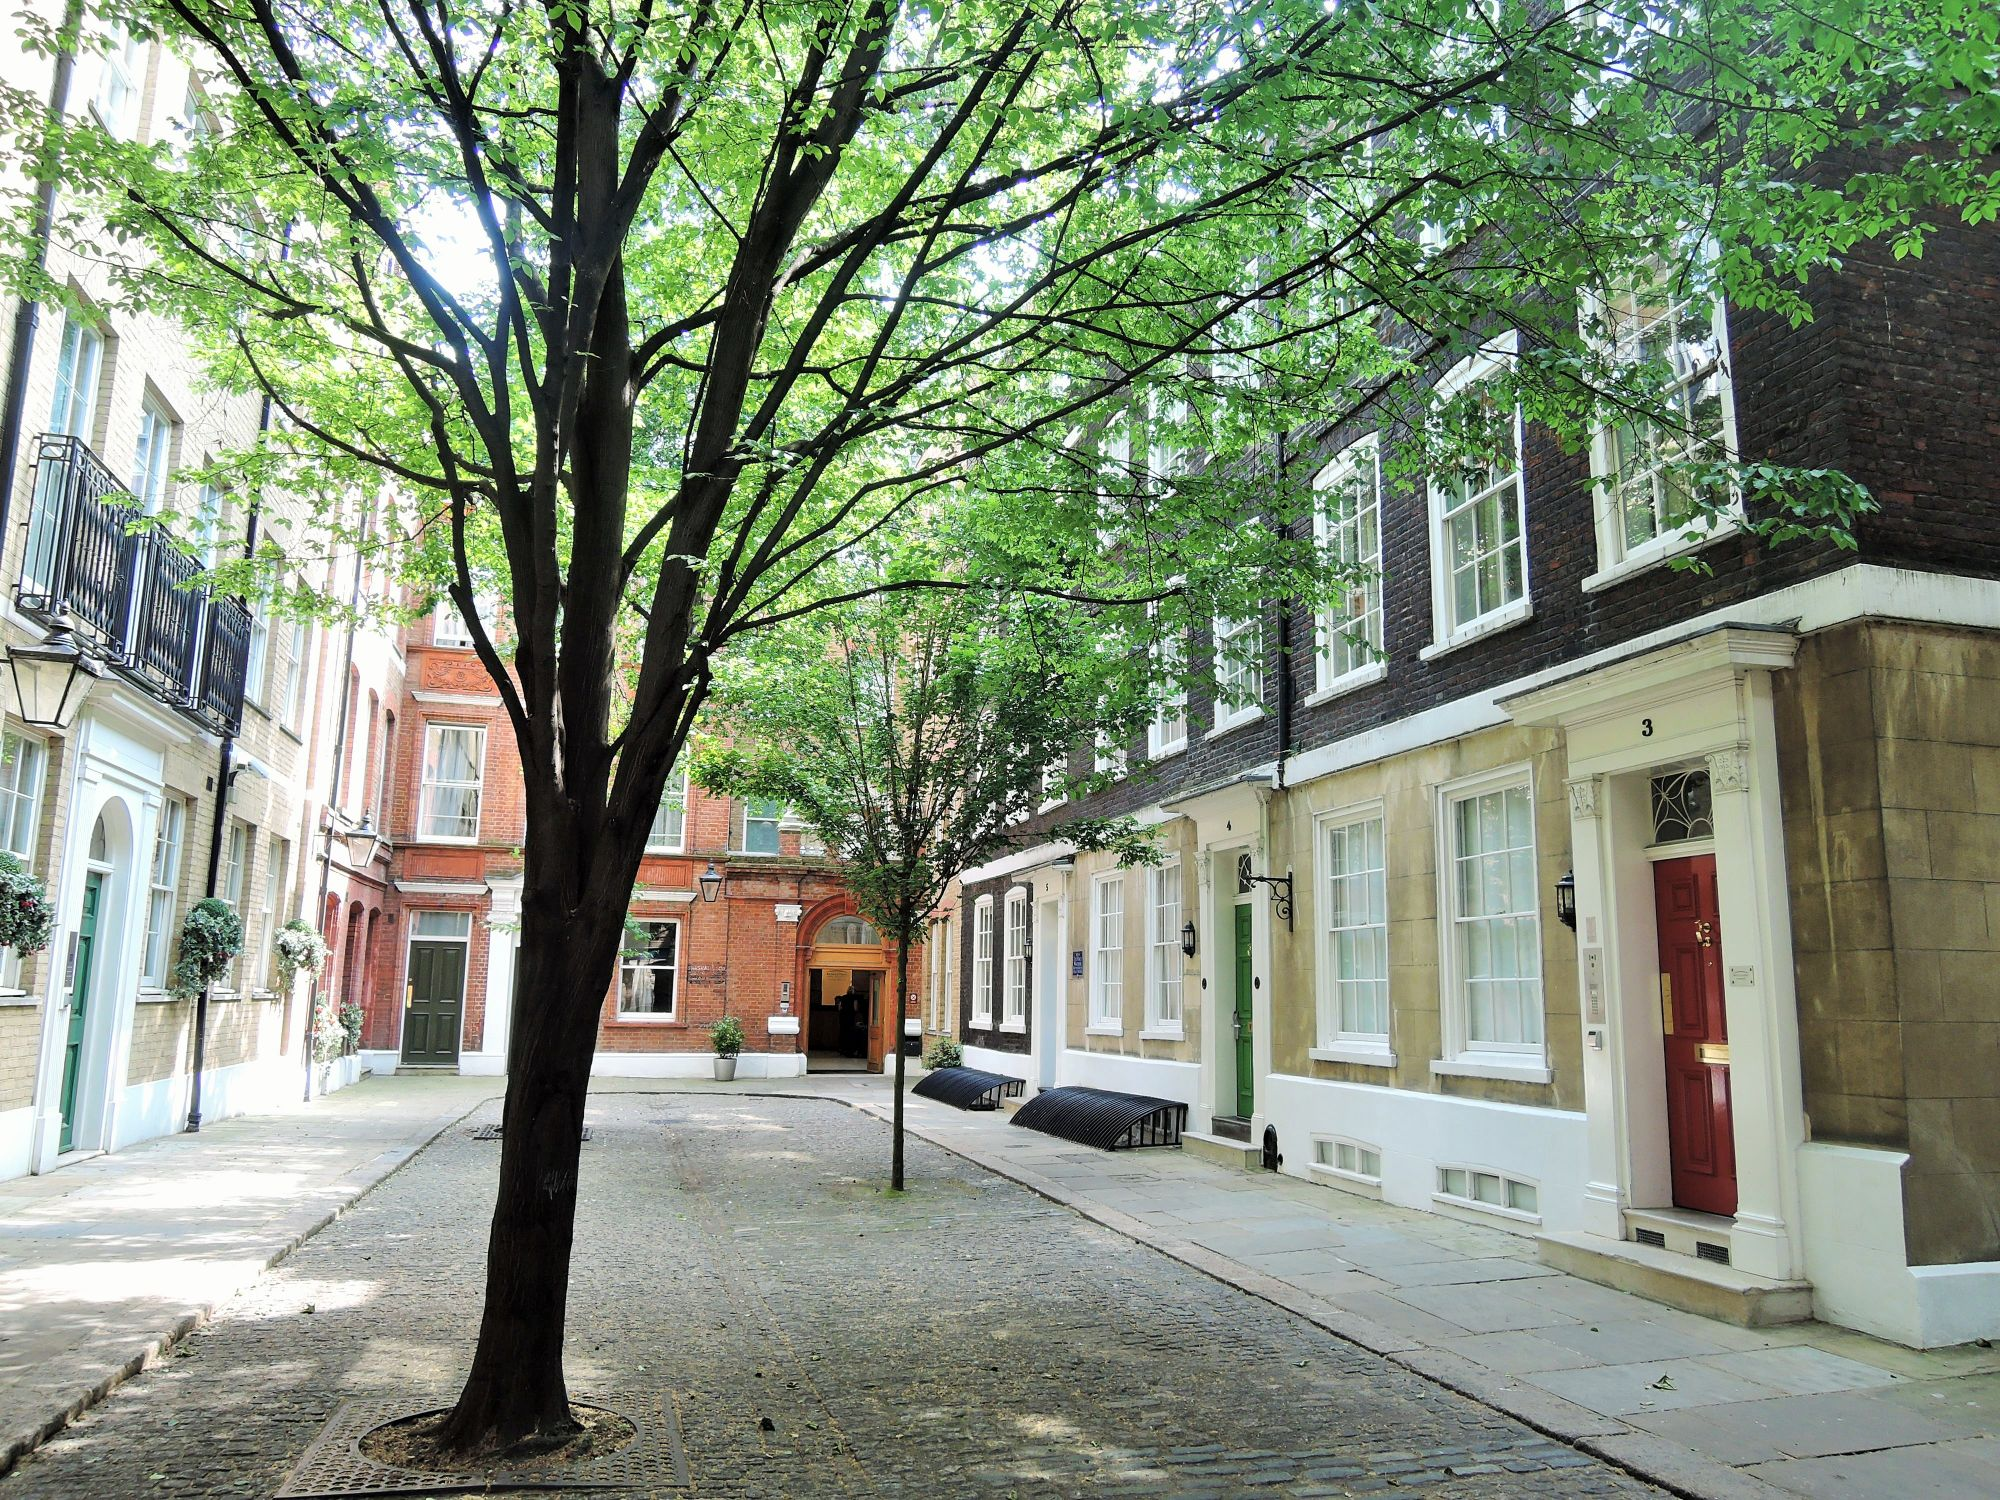 Photo of Wardrobe Place, a small, hidden away court yard. In the centre of the yard are two trees surrounded by elegant townhouses.